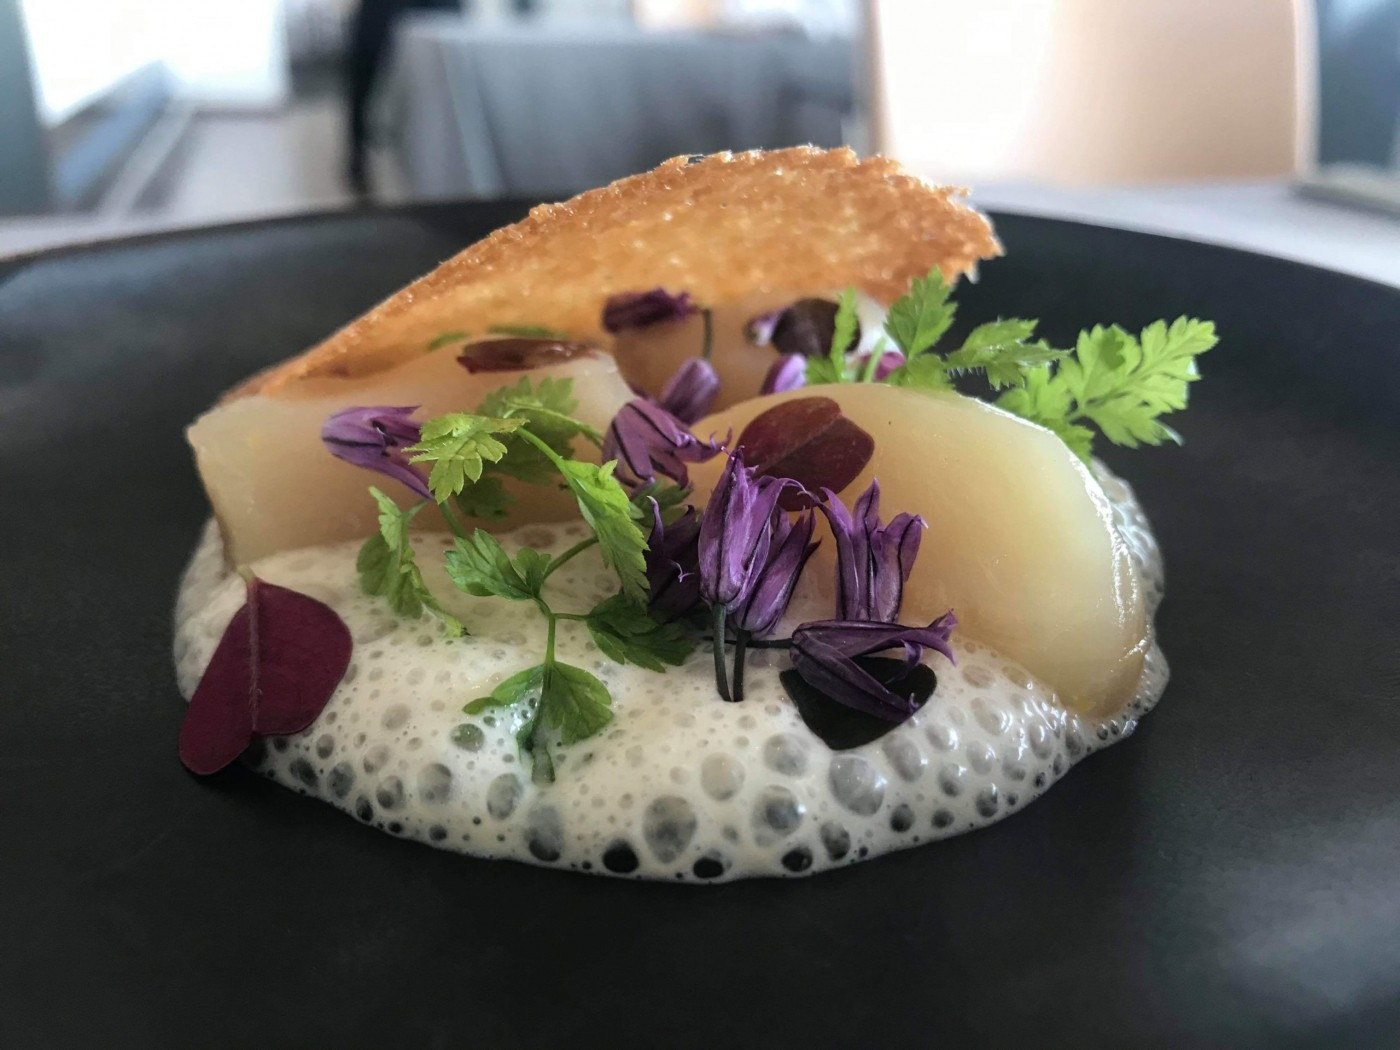 A desert created from local, seasonal ingredients. Photo by Brasserie Ulo – Hotel Arctic